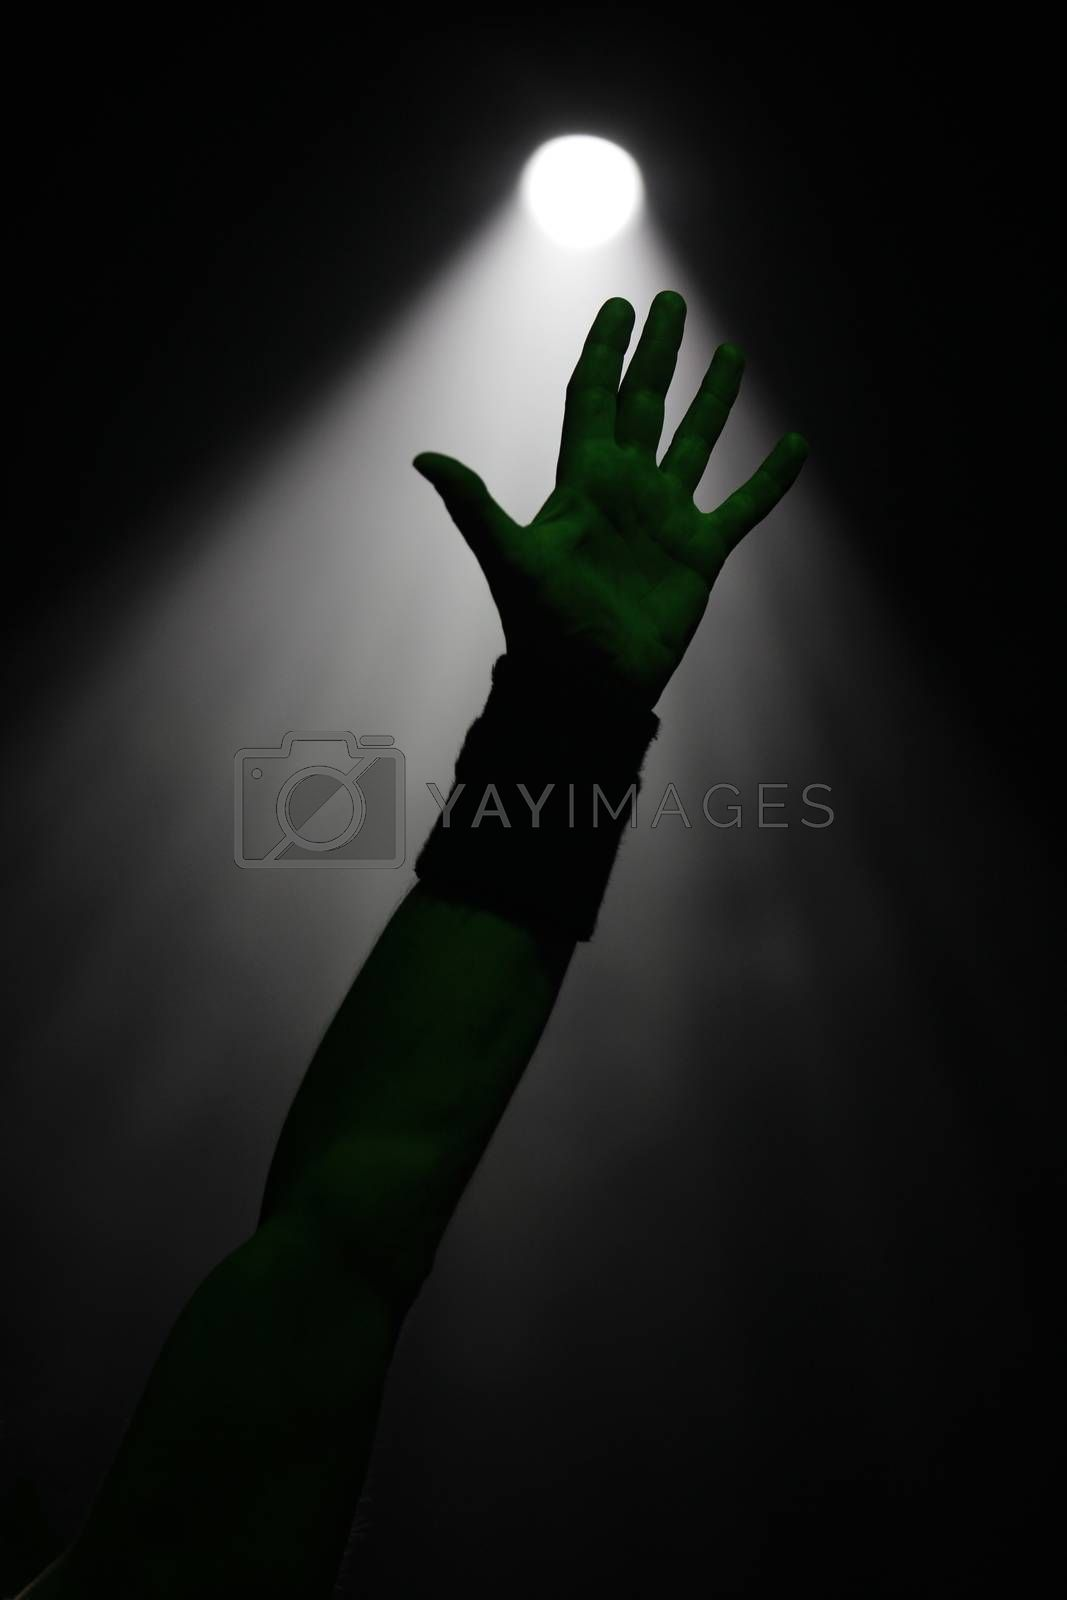 Hand in the air on a concert show